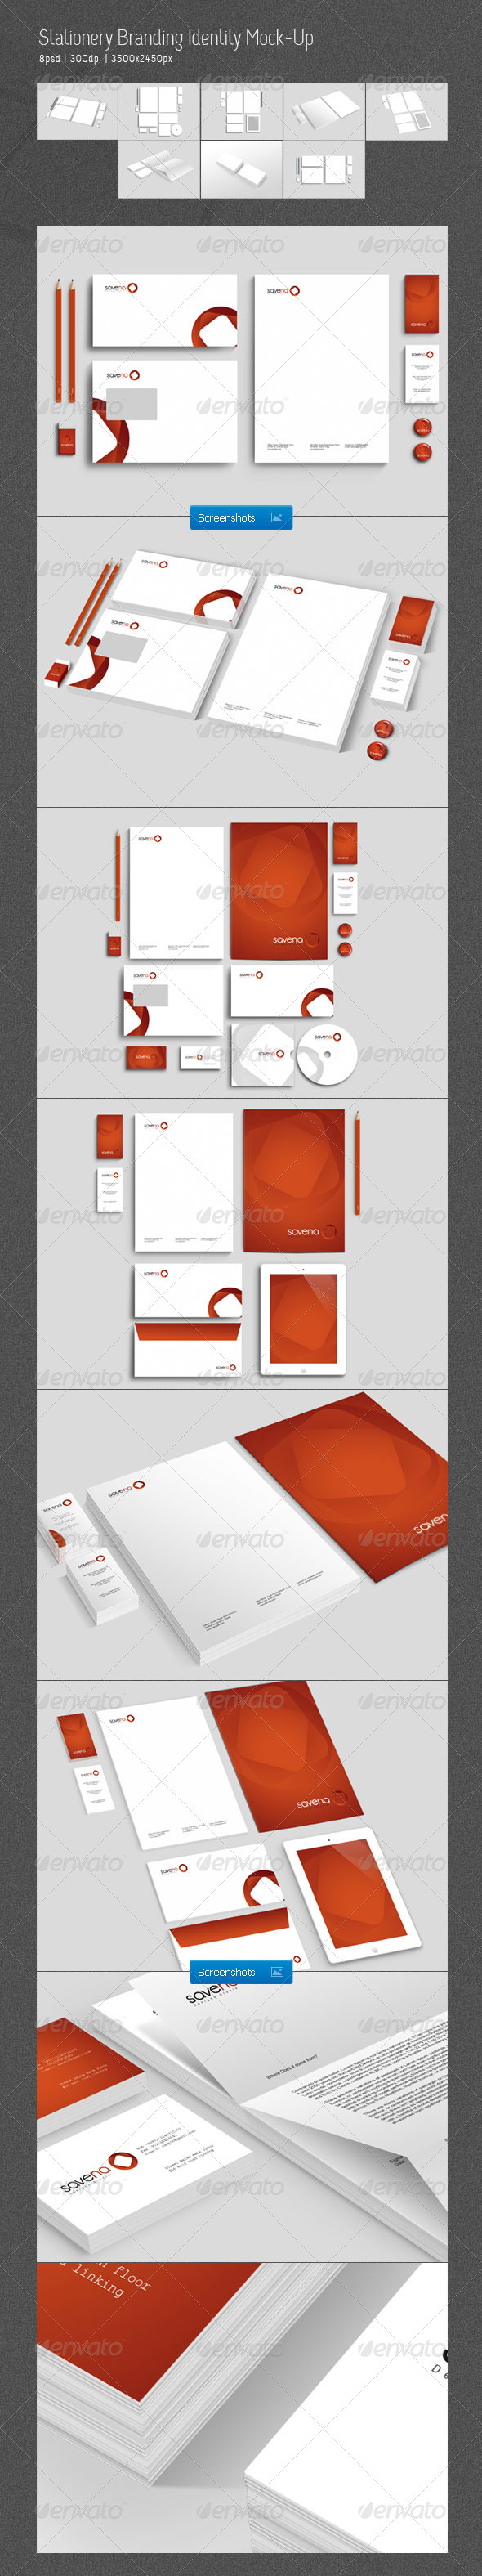 Stationery Branding Identity Mock-Up